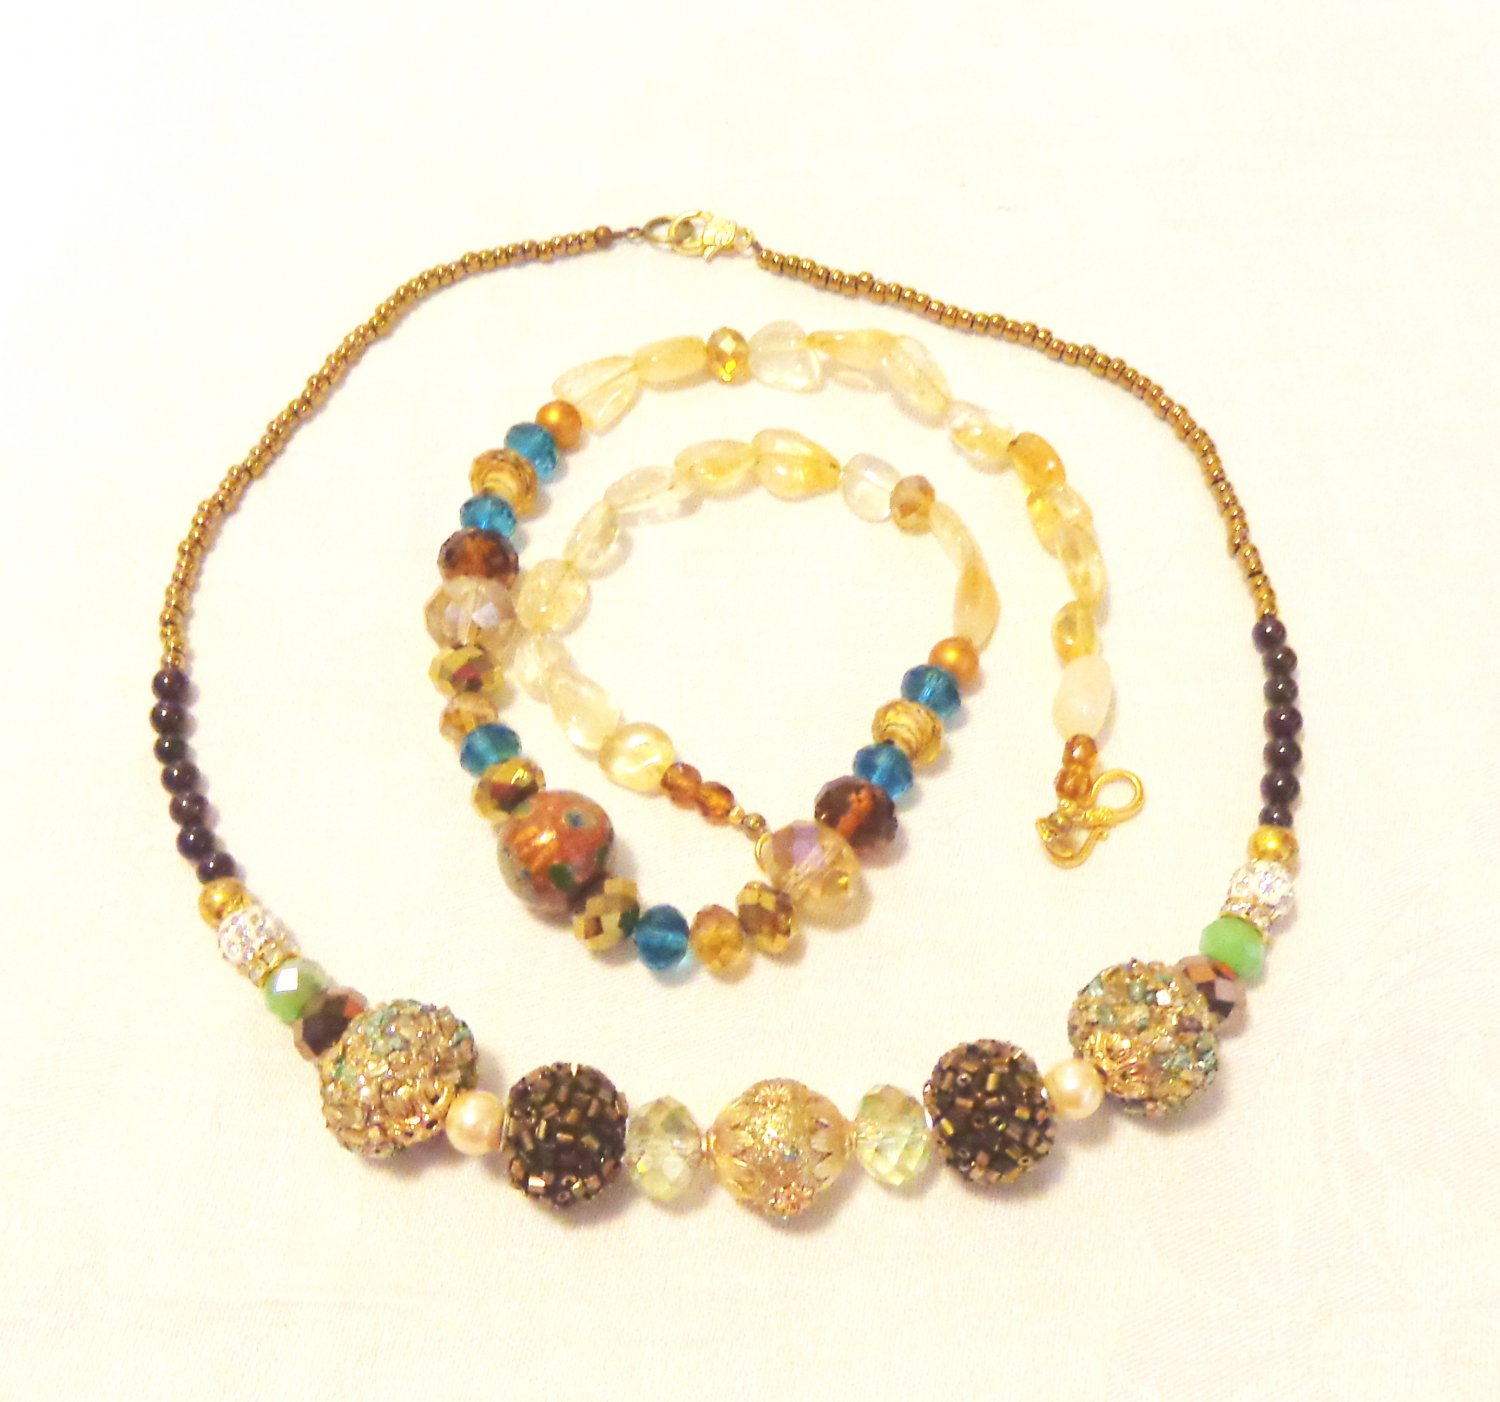 Two handmade mixed bead necklaces bronze gold glamour and blue copper mixed beads 22 inches ll3520